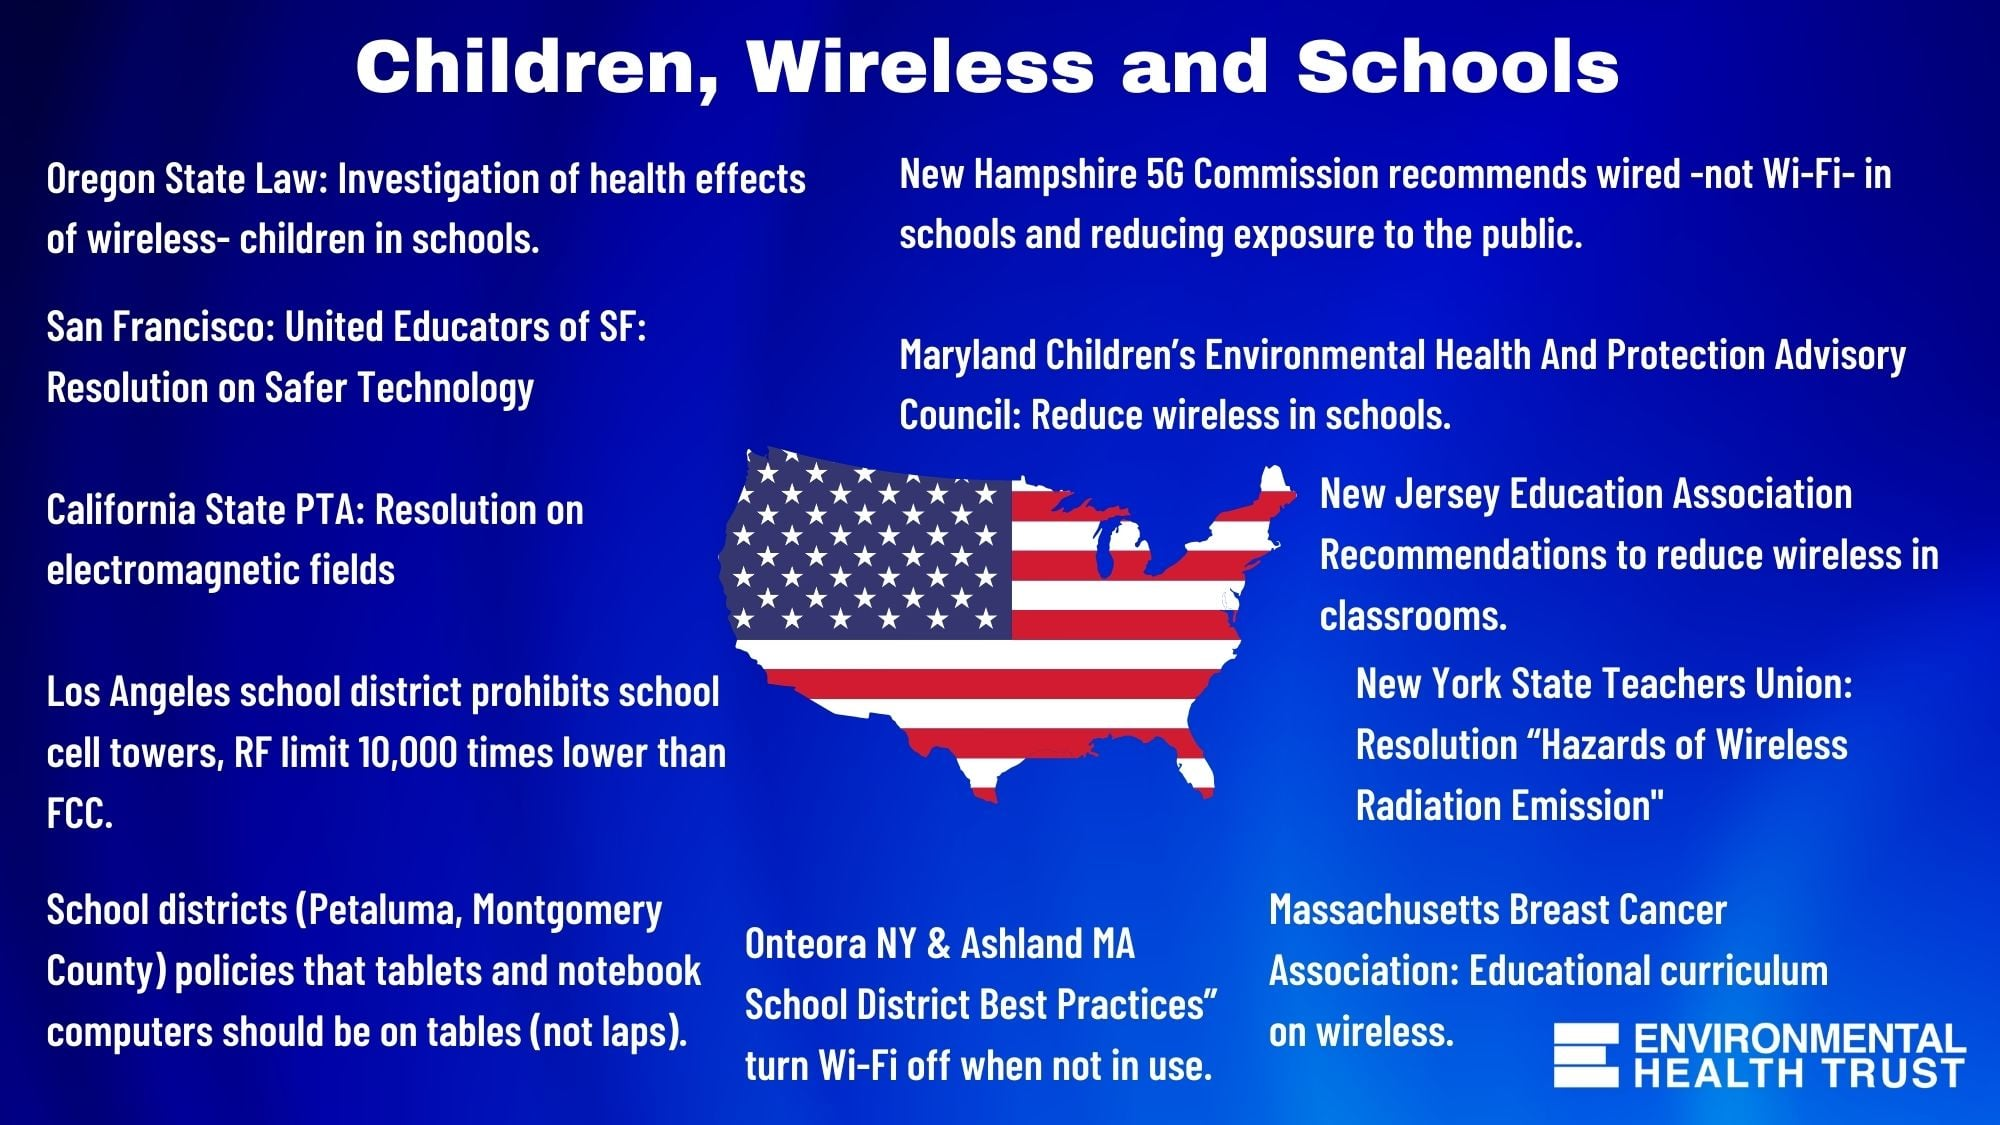 More American School Districts Providing Unsafe WiFi Hotspots for Remote Student Learning